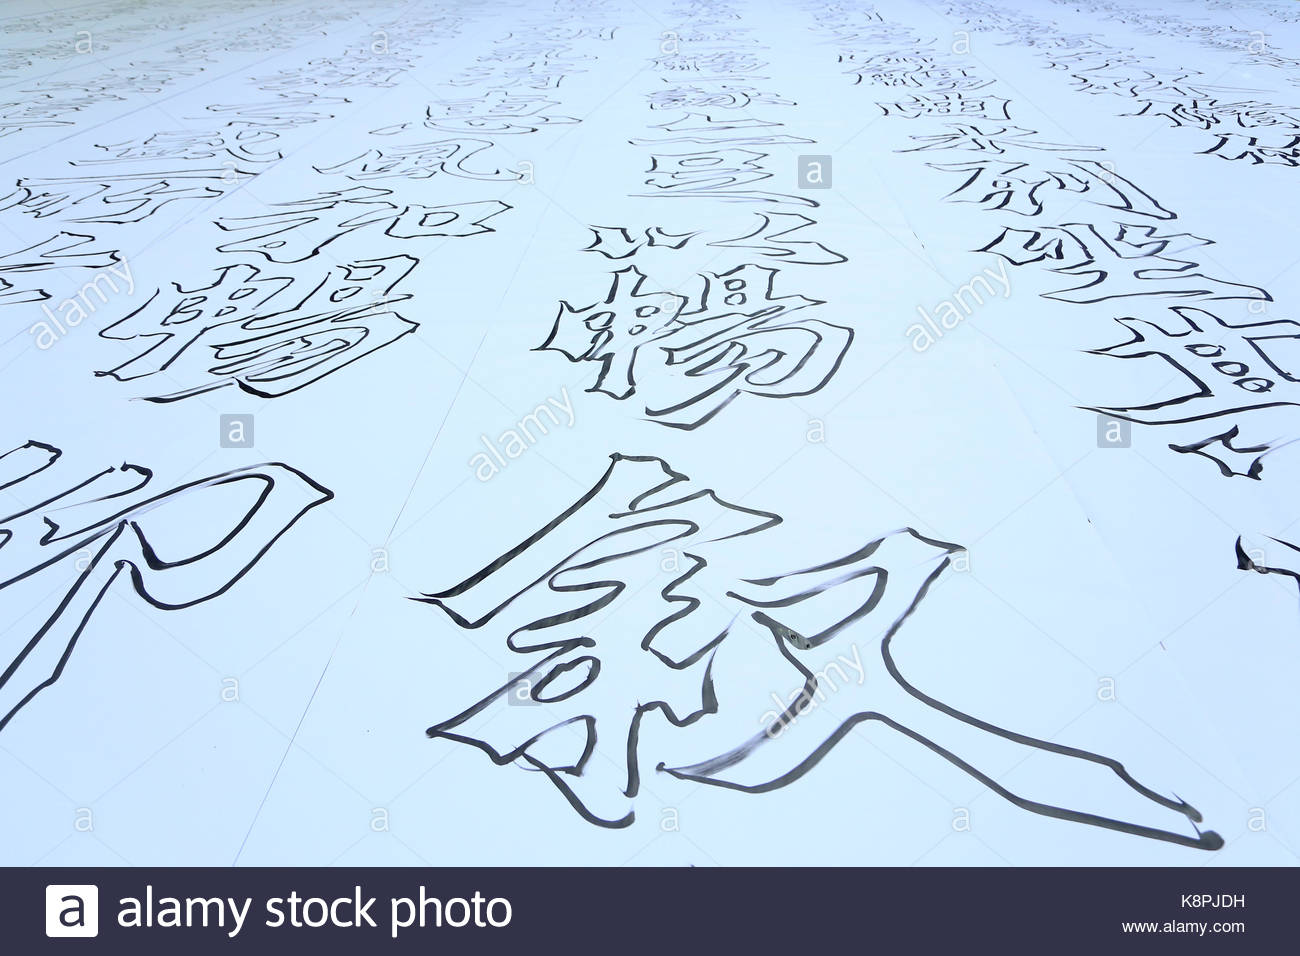 Hangzhou, Zhejiang, China. 20th Sep, 2017. Chinese calligraphy artist Chengwu Wang is writing the famous 'The - Stock Image